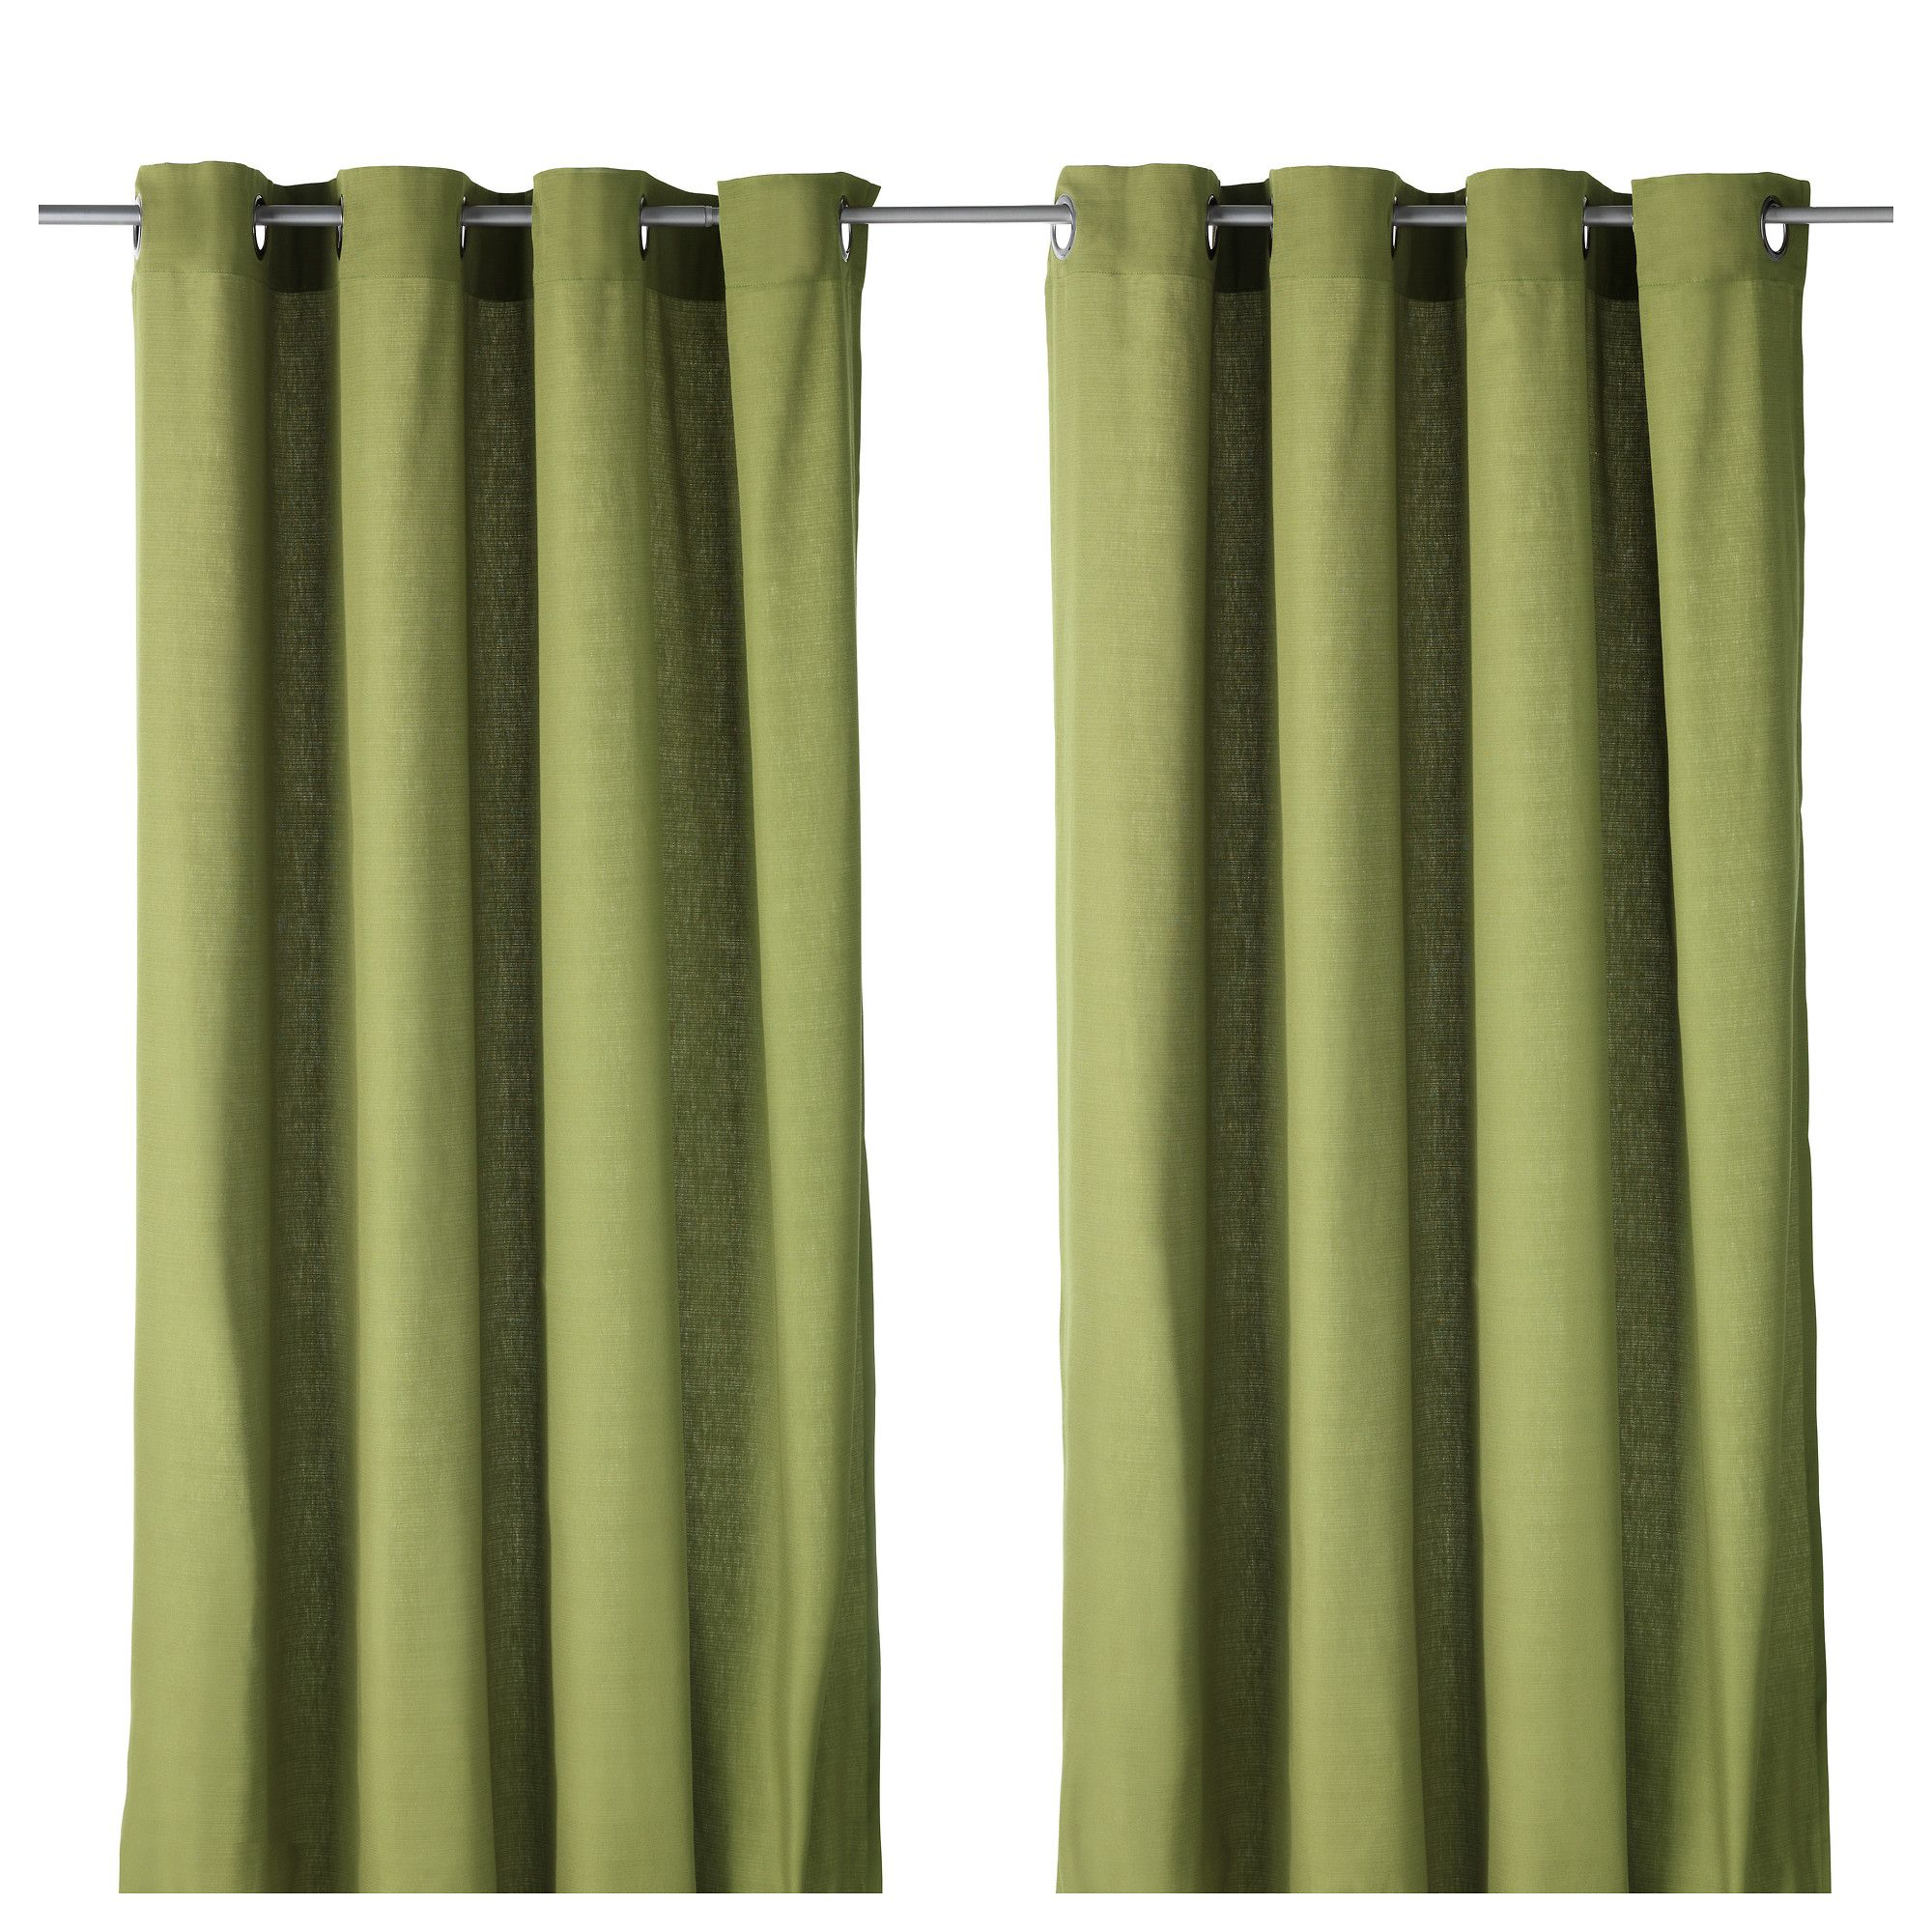 Nederland Woonkamer Ikea Curtains Curtains With Blinds Green